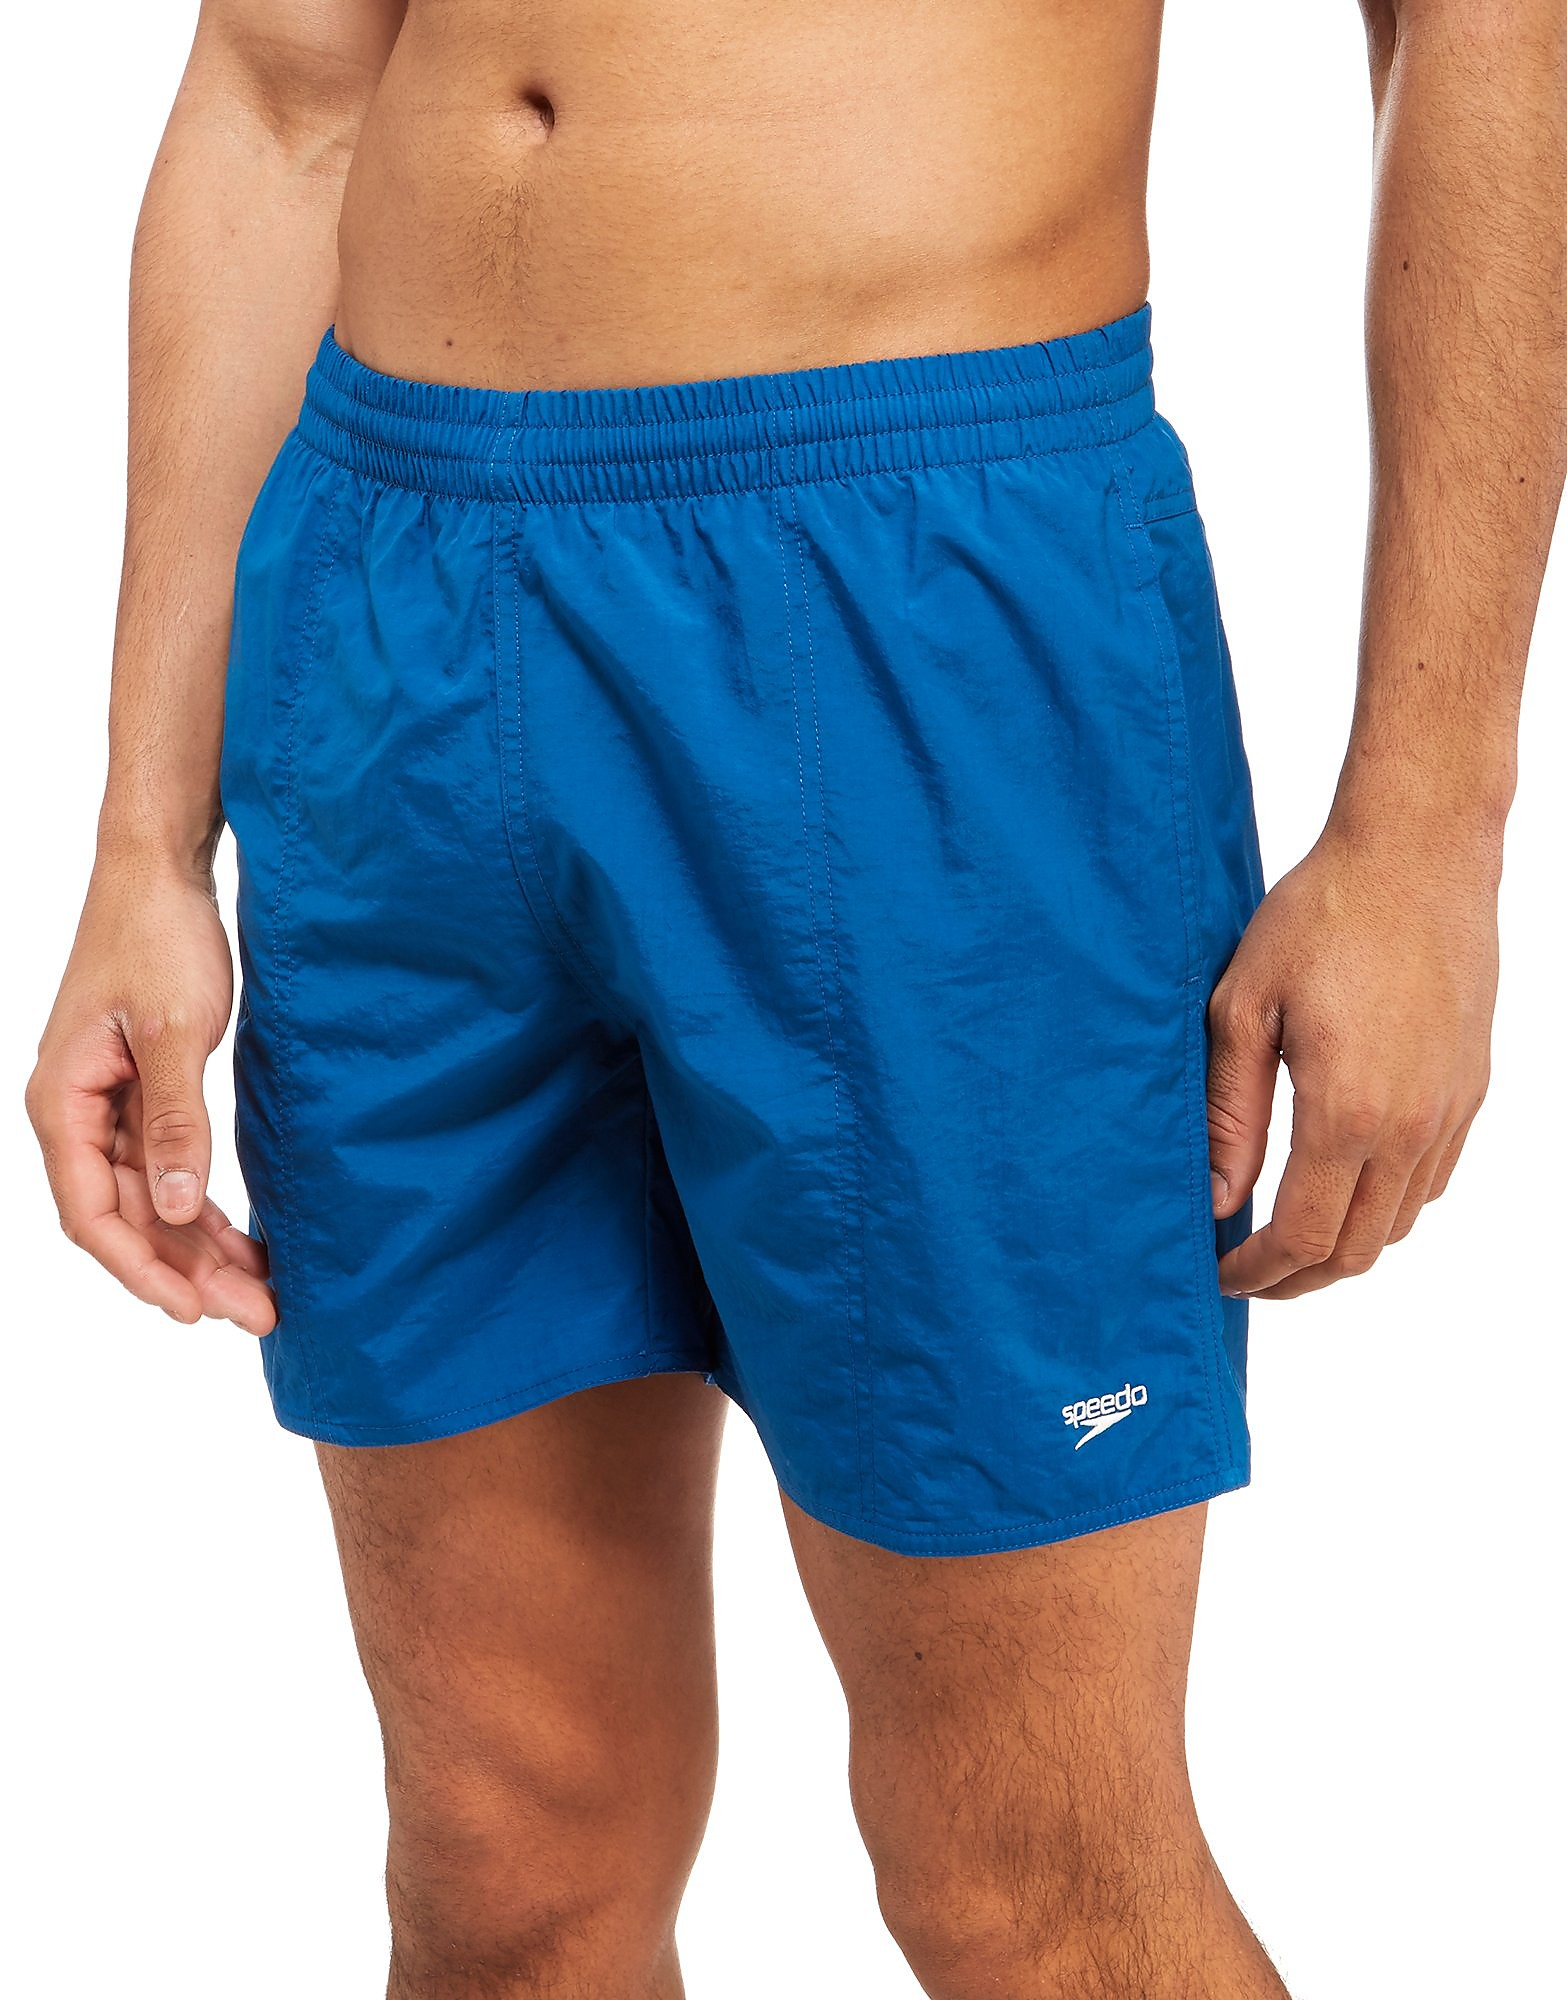 Speedo Solid Leisure Badehose